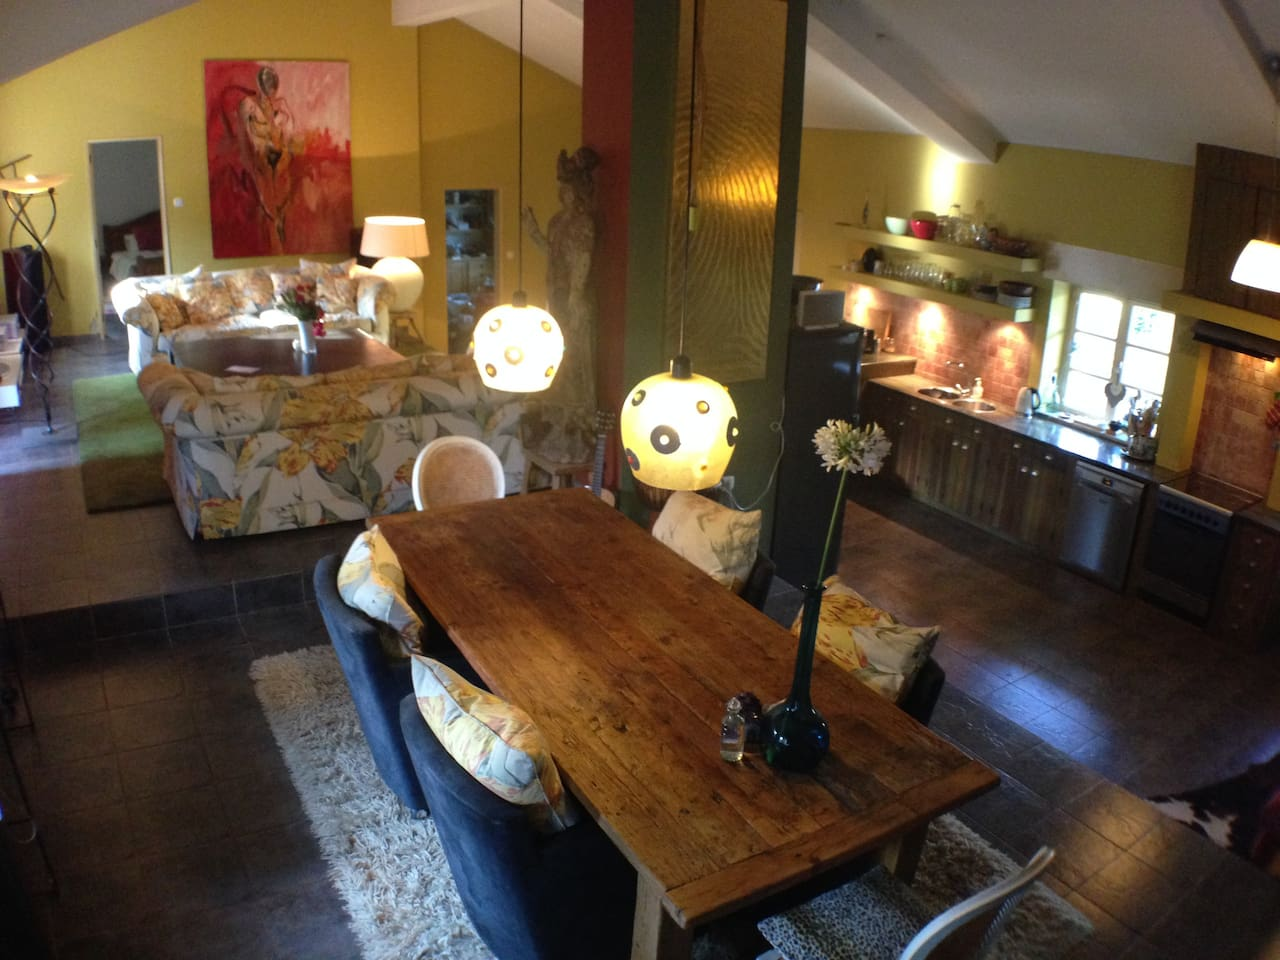 Lovely big dining room with open kitchen With dishwasher, big refrigerator and ice section.  Split level.